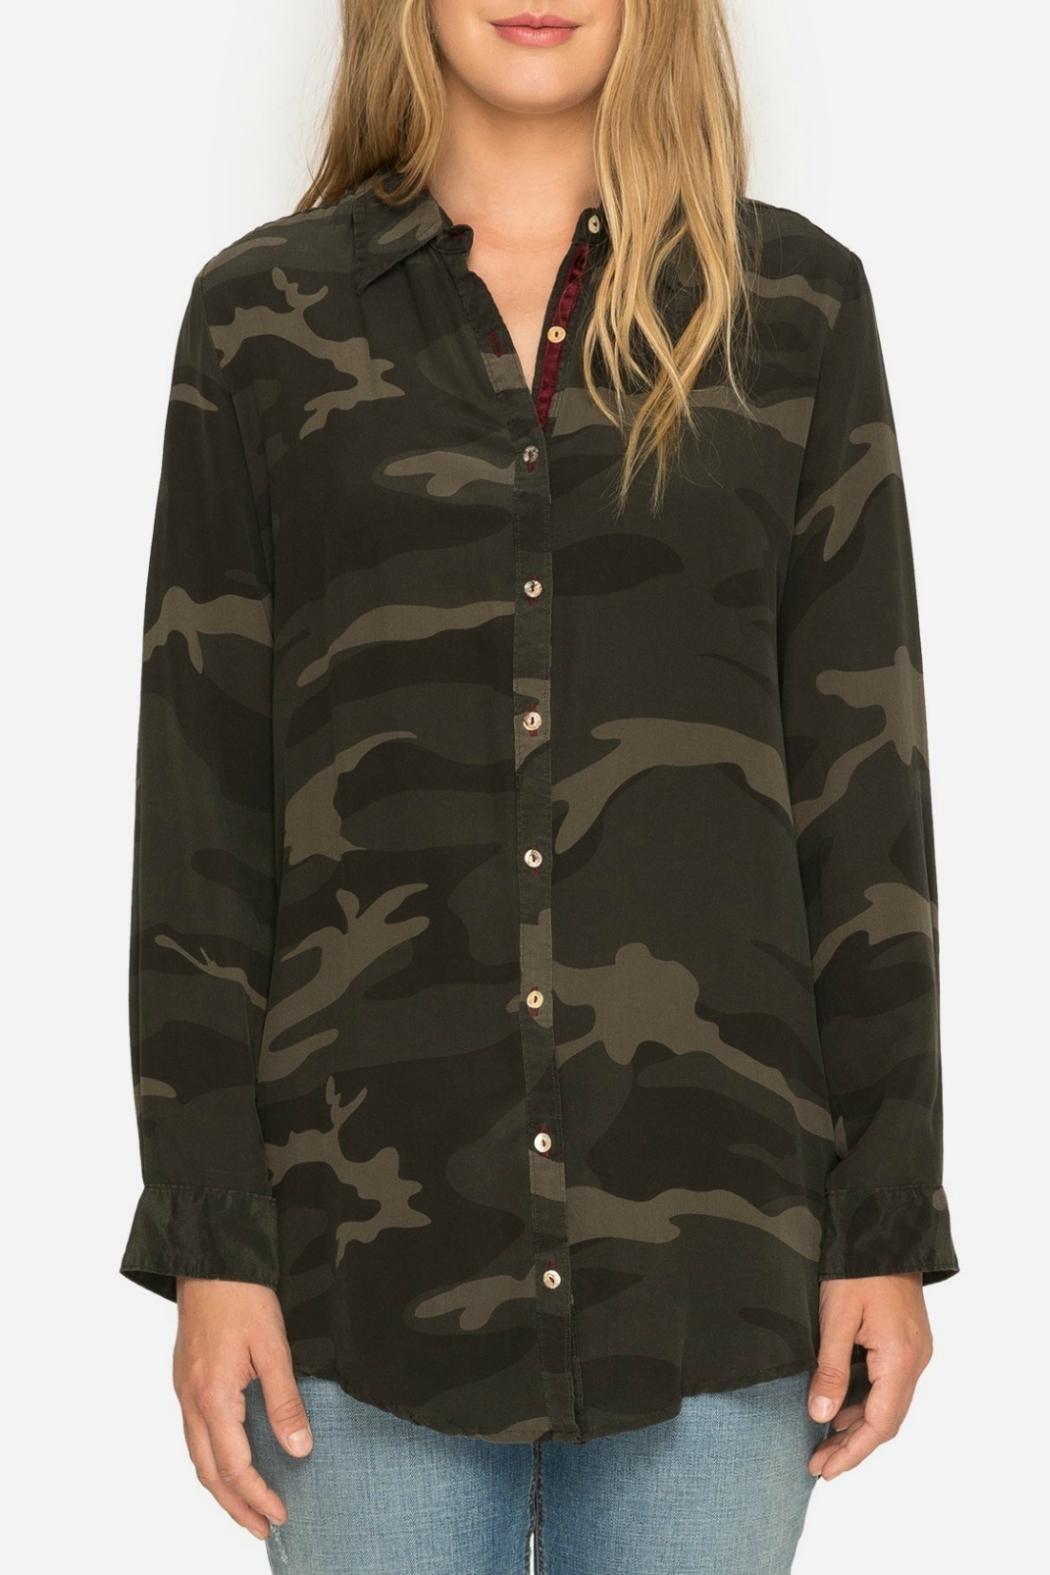 Johnny Was Terre Camo Shirt - Front Full Image